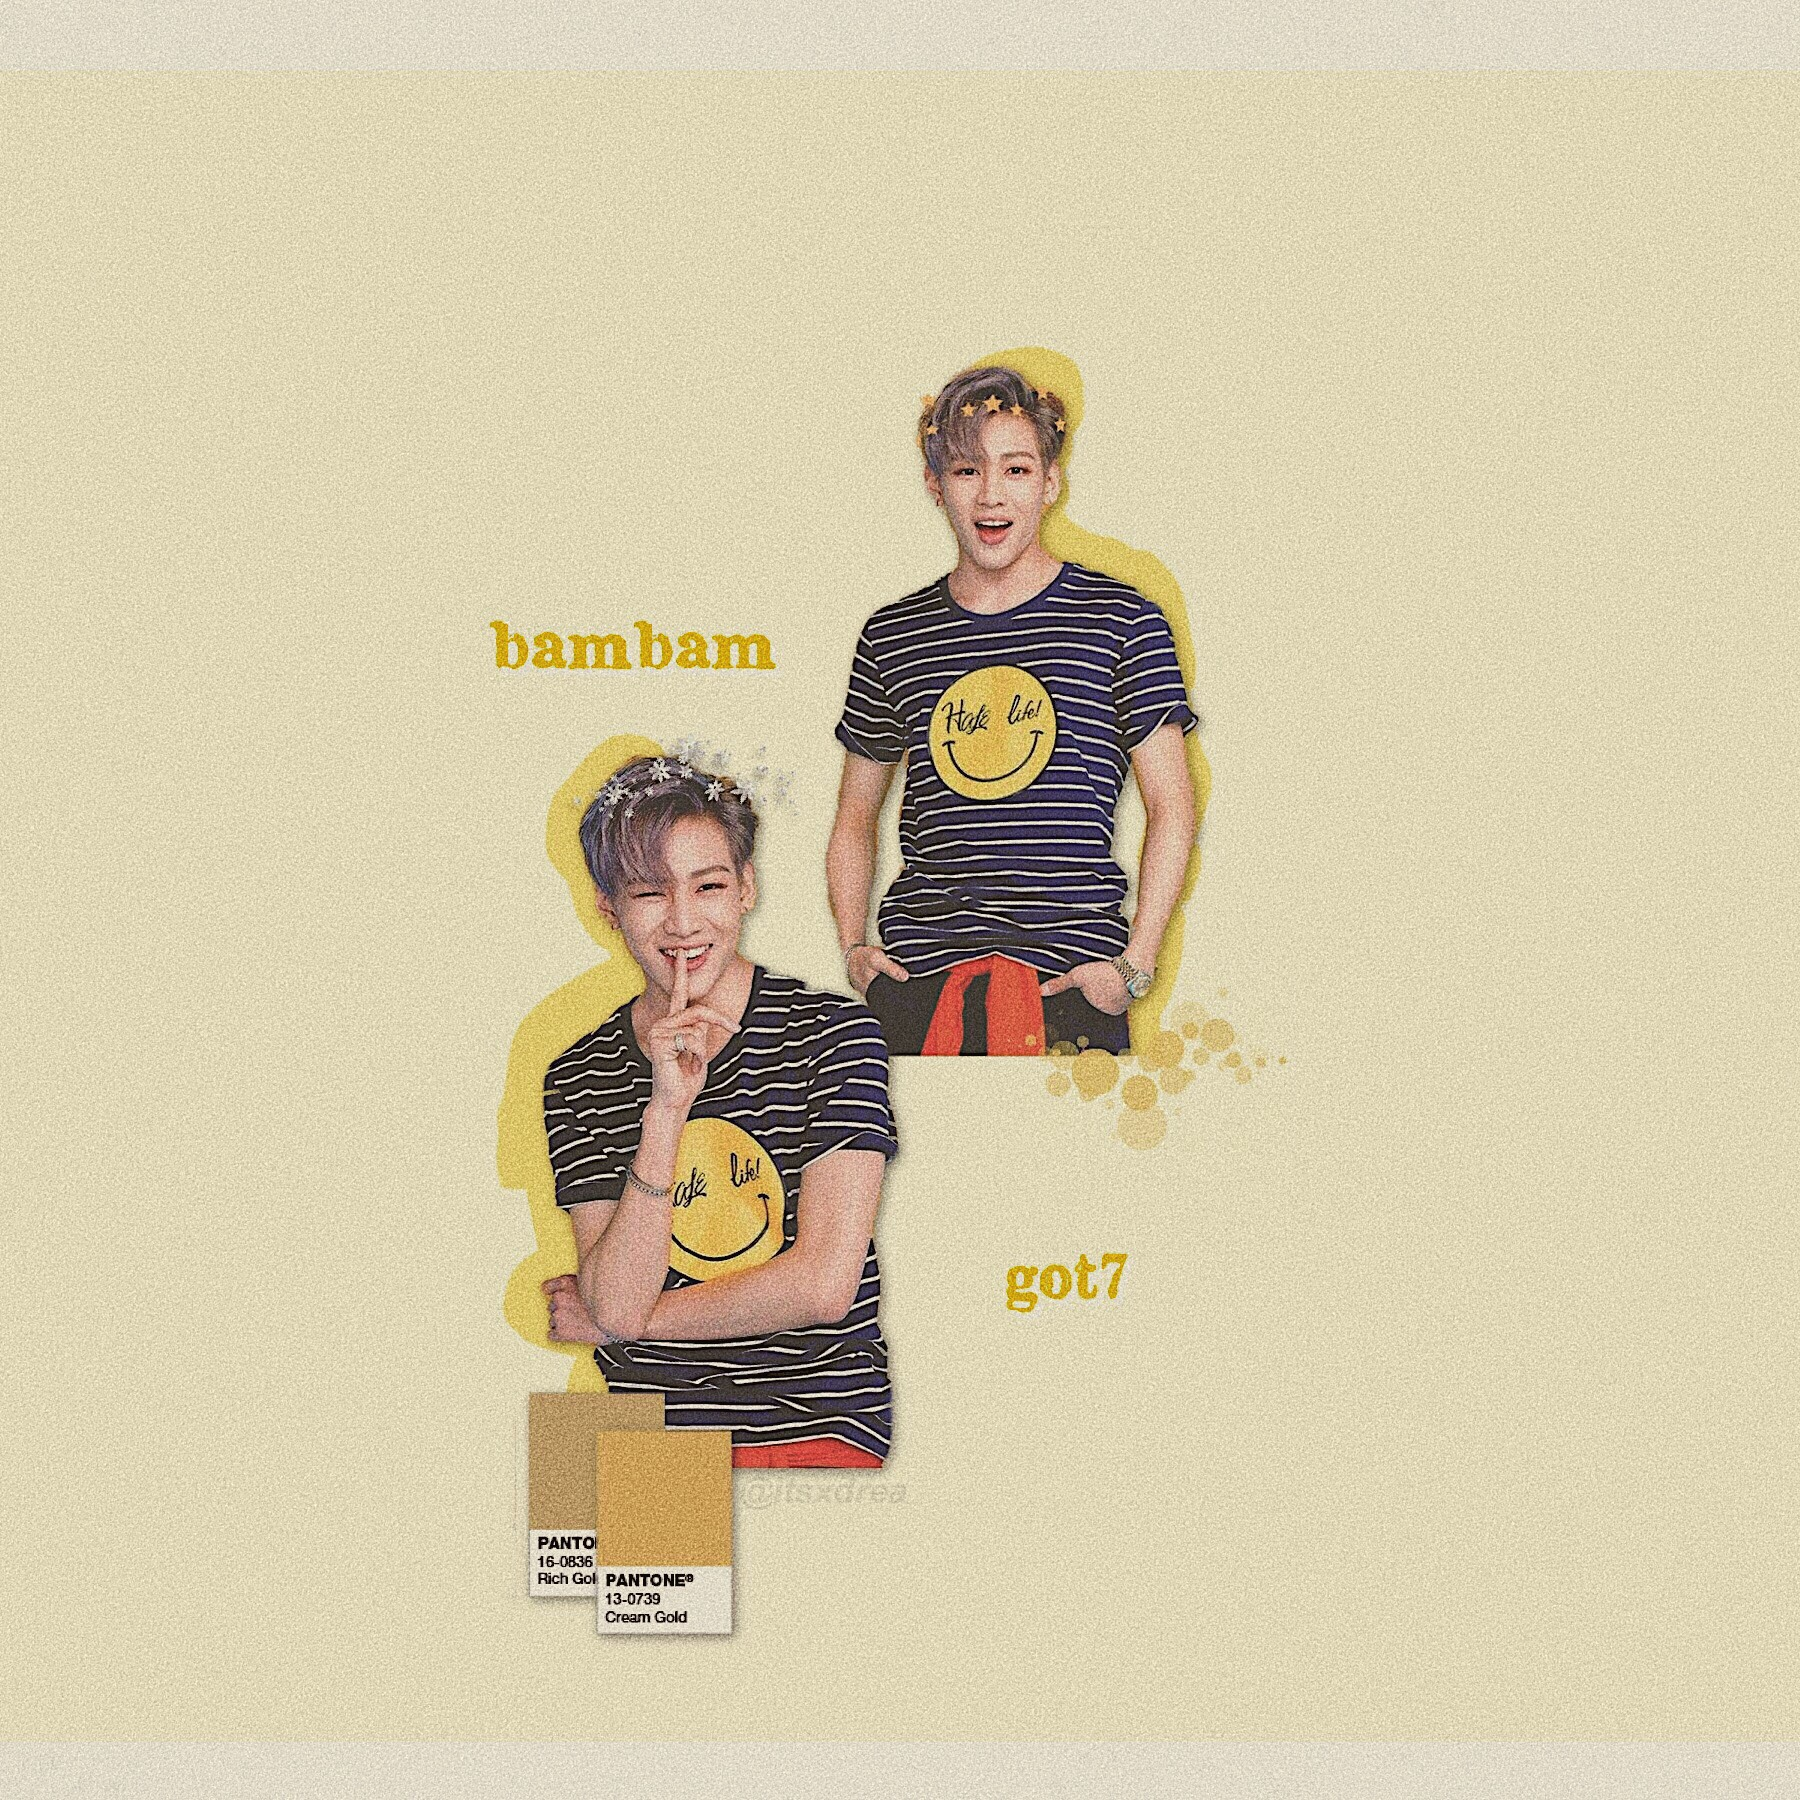 🌼 • bambam // got7 • > edit request for @POS1T1VE_V1BES < hope you like it !! i'm RLLY sry there isn't a lot of red, i just thought these photos looked rlly good with the edit :// >> i don't rlly stan got7 but I LOVE watching interviews w/ them bc they're